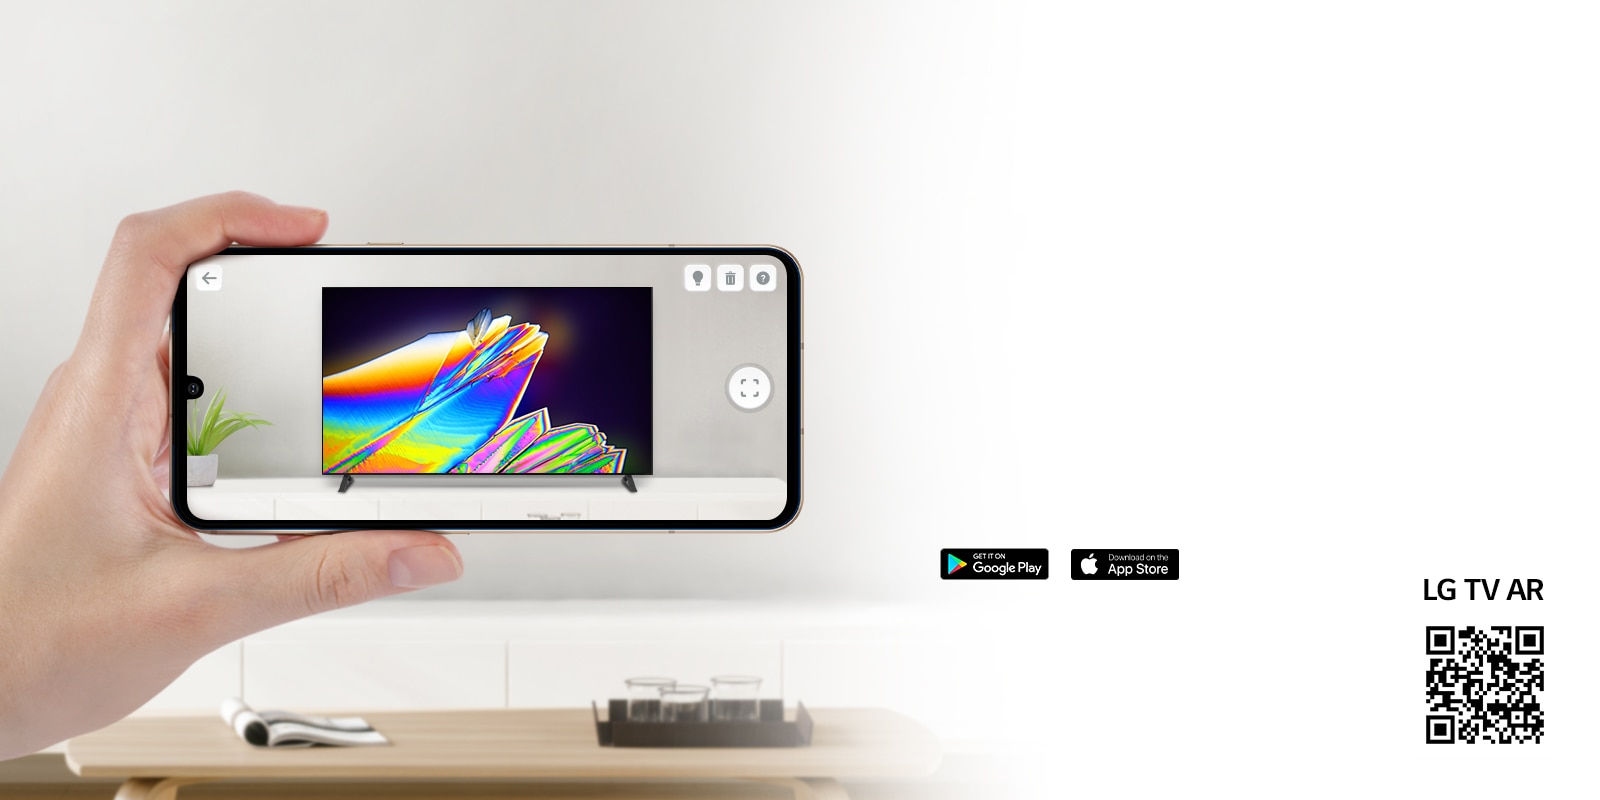 A person using LG TV AR app on a phone and a QR code which links to LG TV AR (http://www.lgtvism.com/lgtvar)